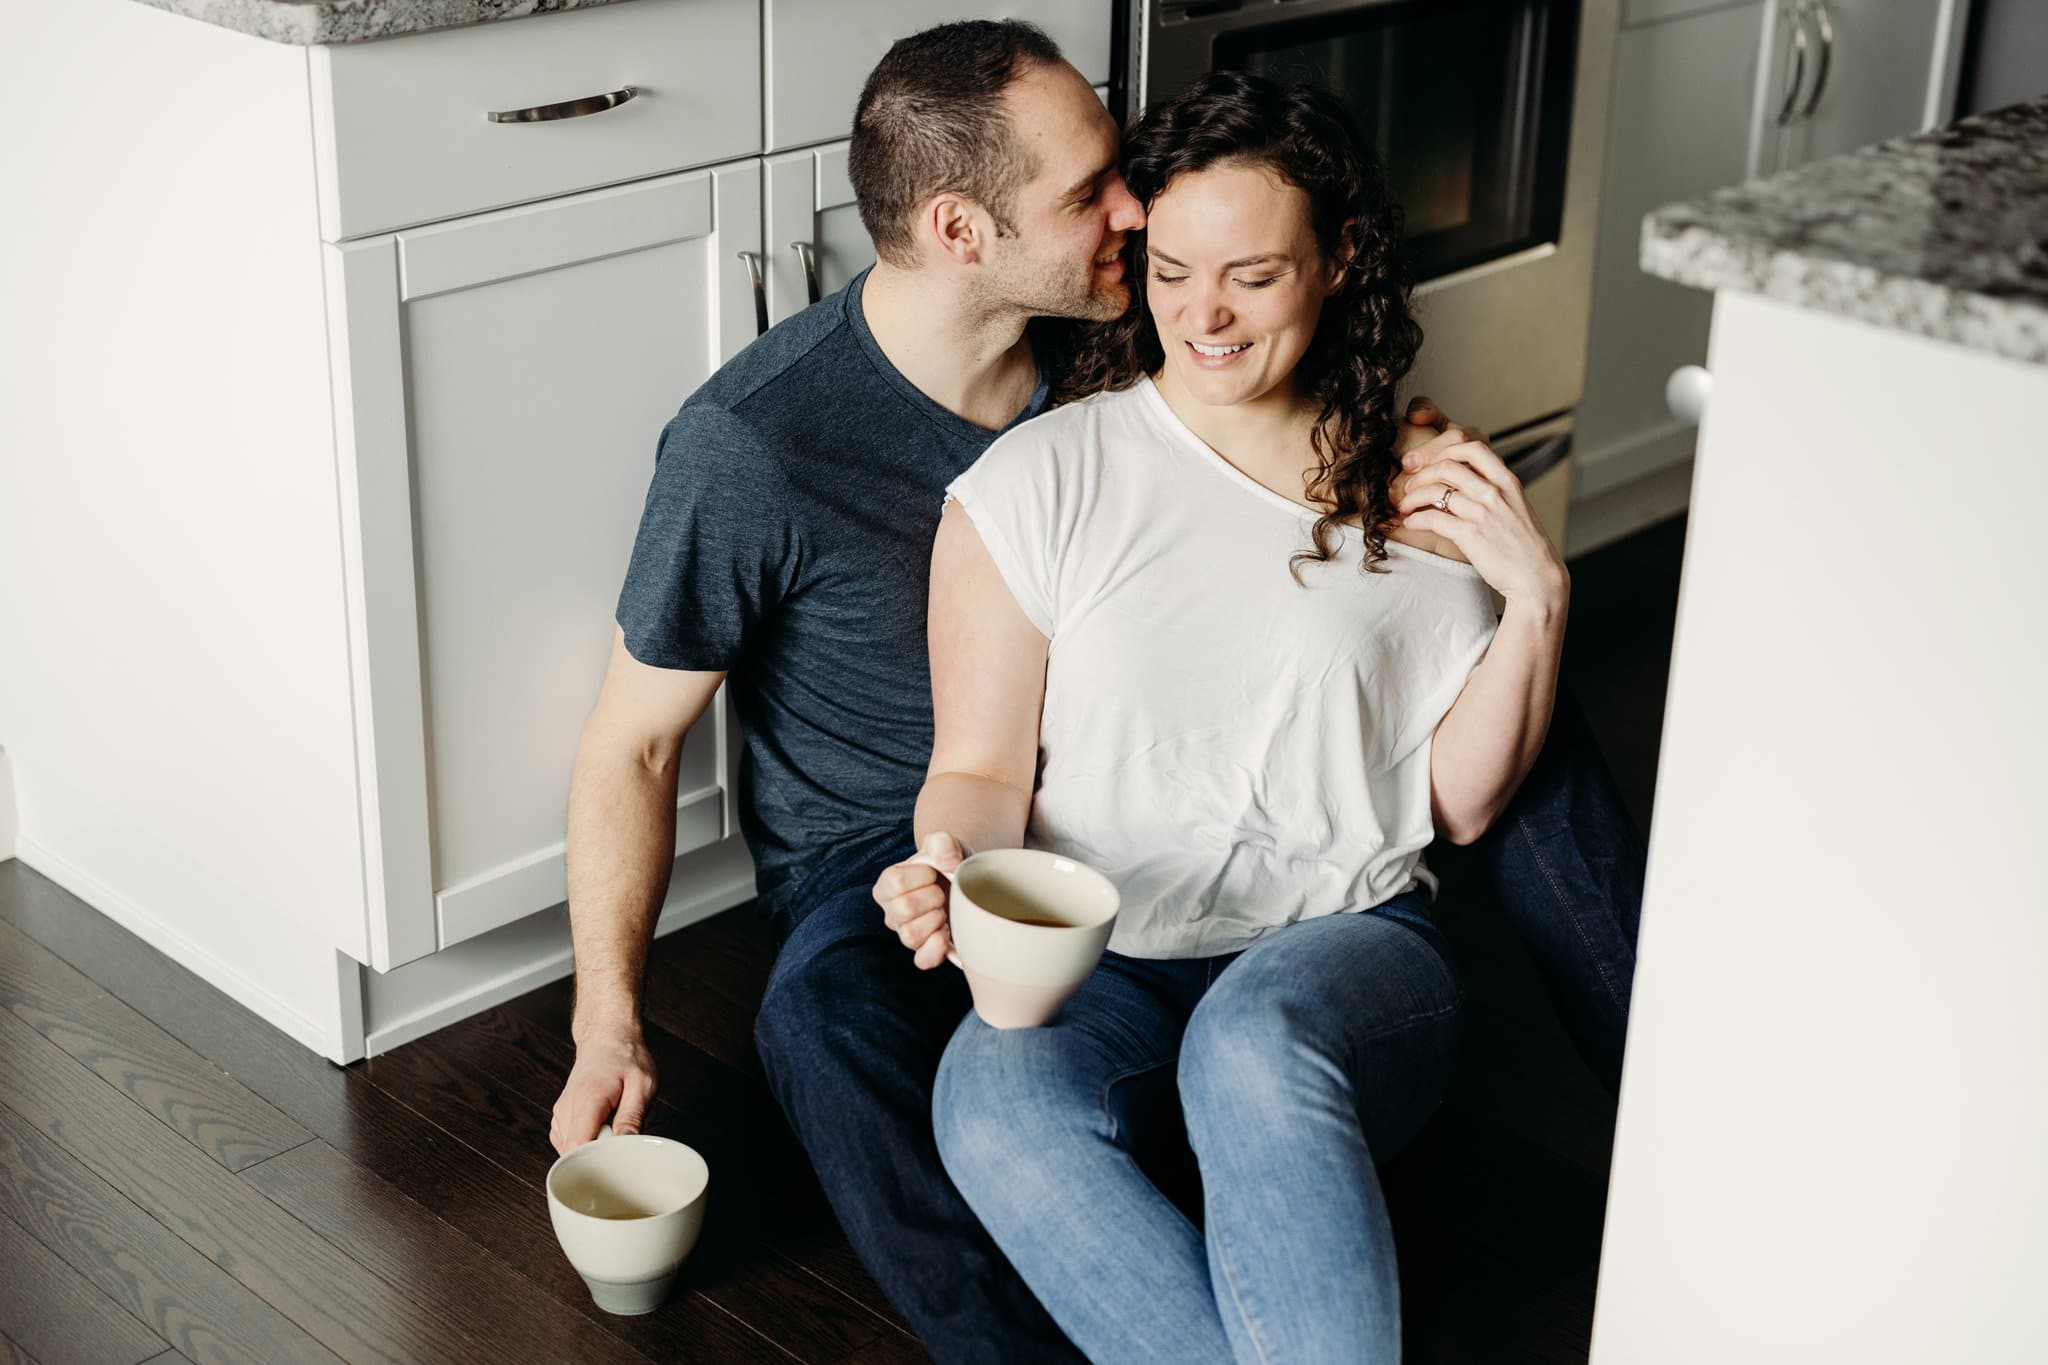 Ashley Daphne Photography Calgary Couple Wedding Photographer In Home Lifestyle Photography Session Engagement Photos_0061.jpg